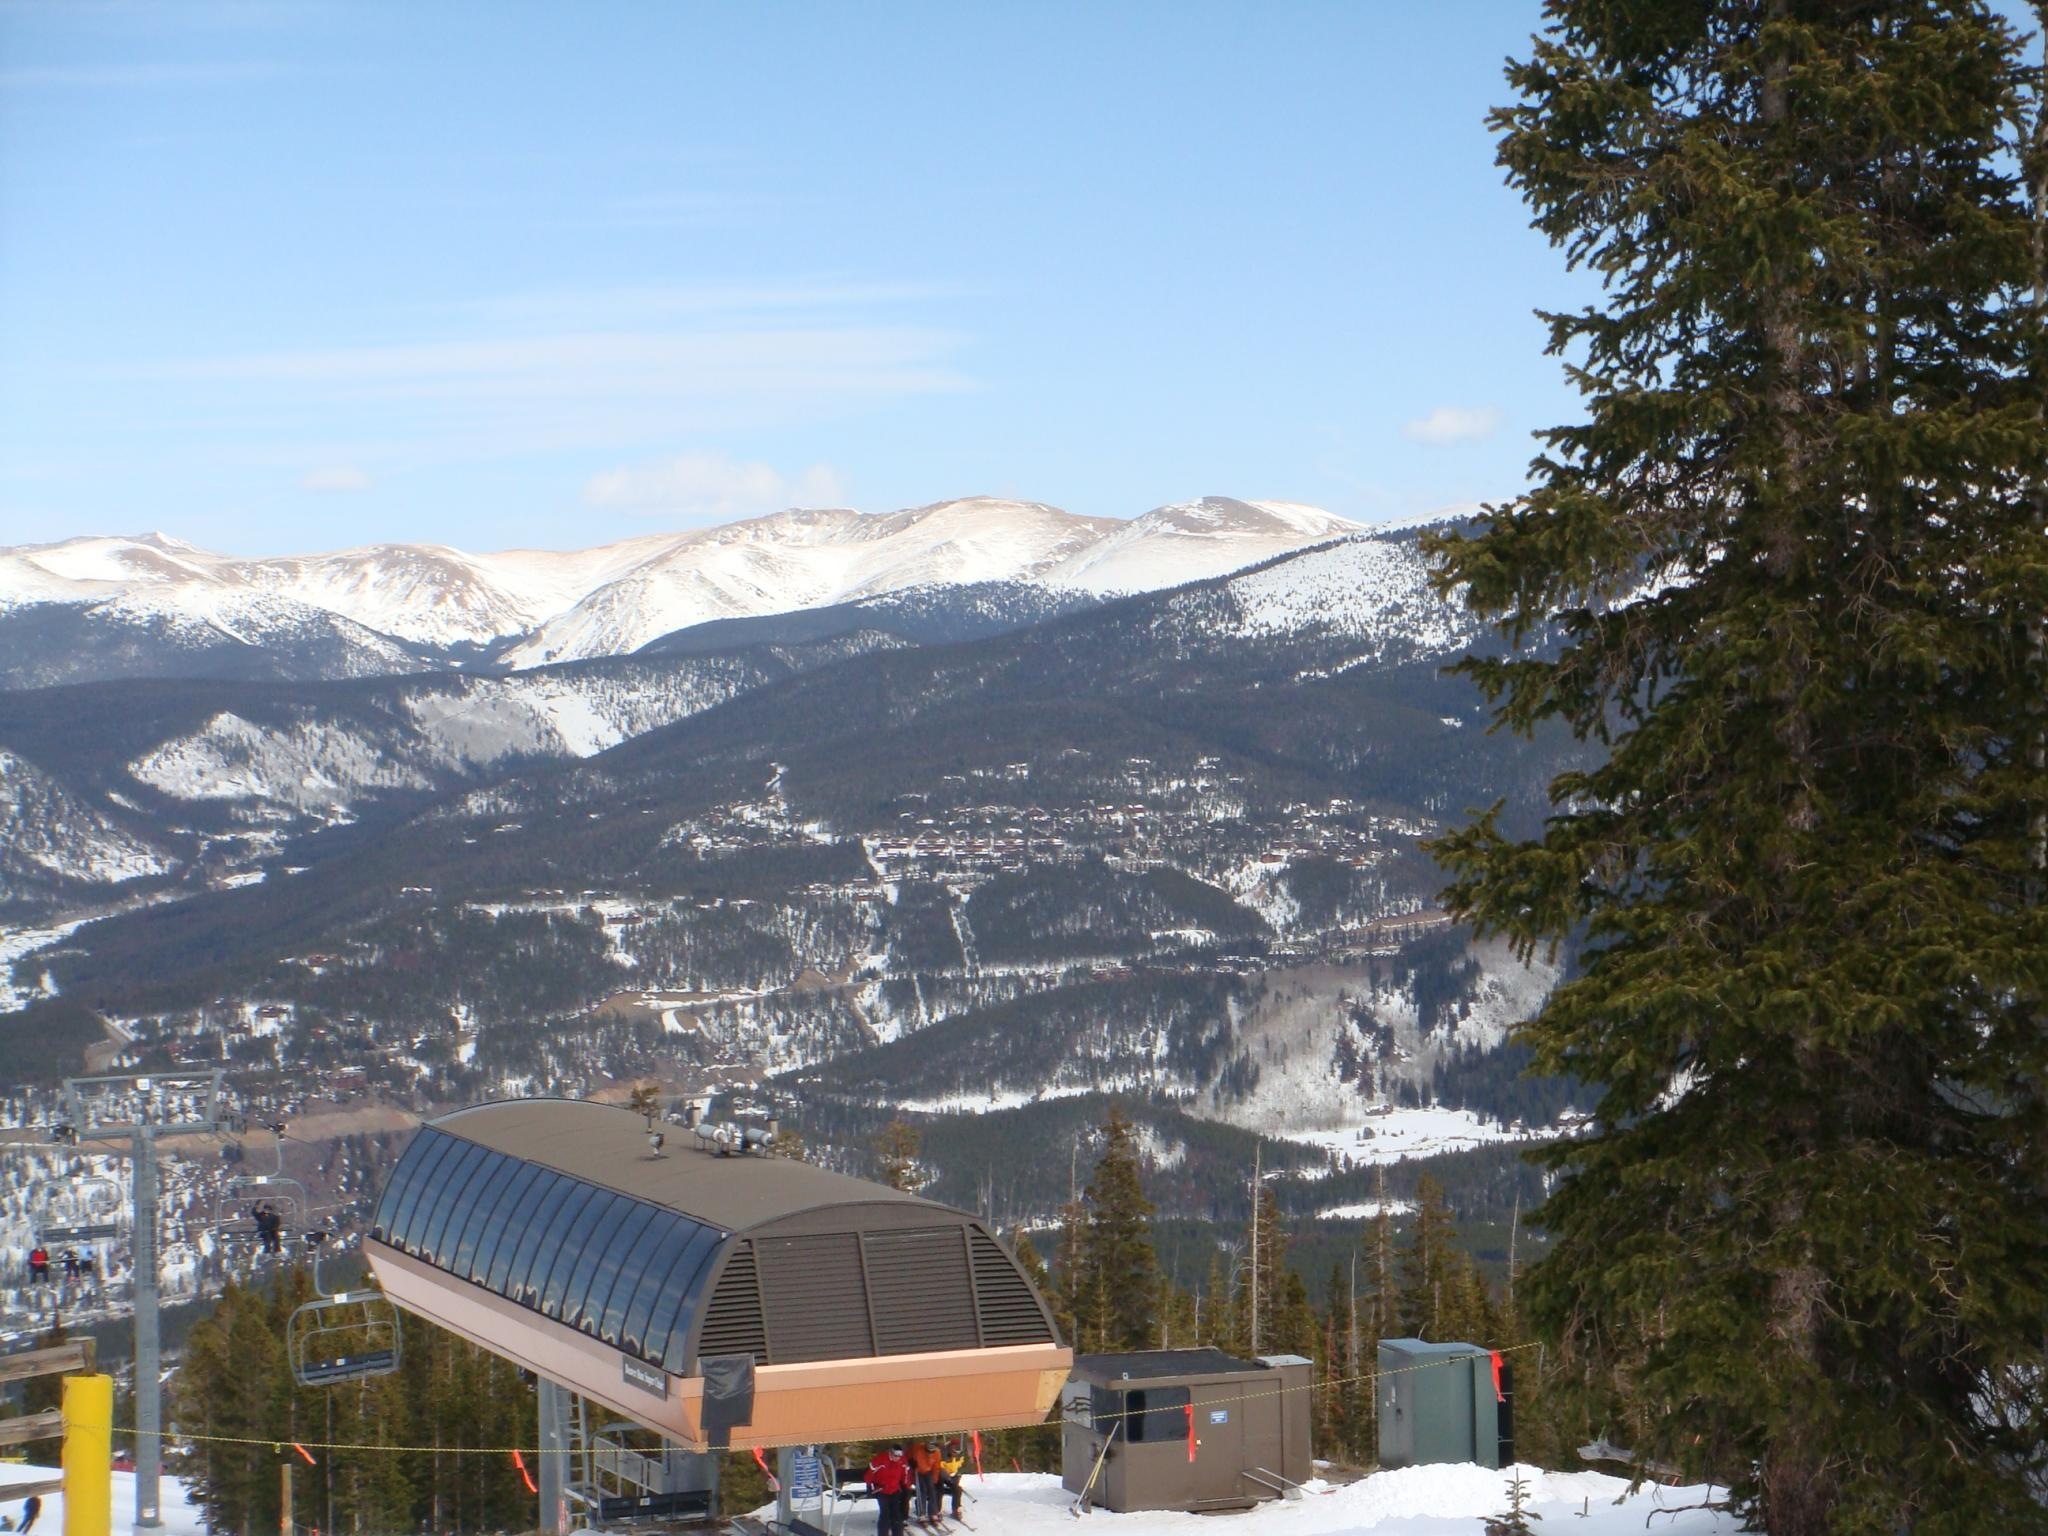 View from Peak 9